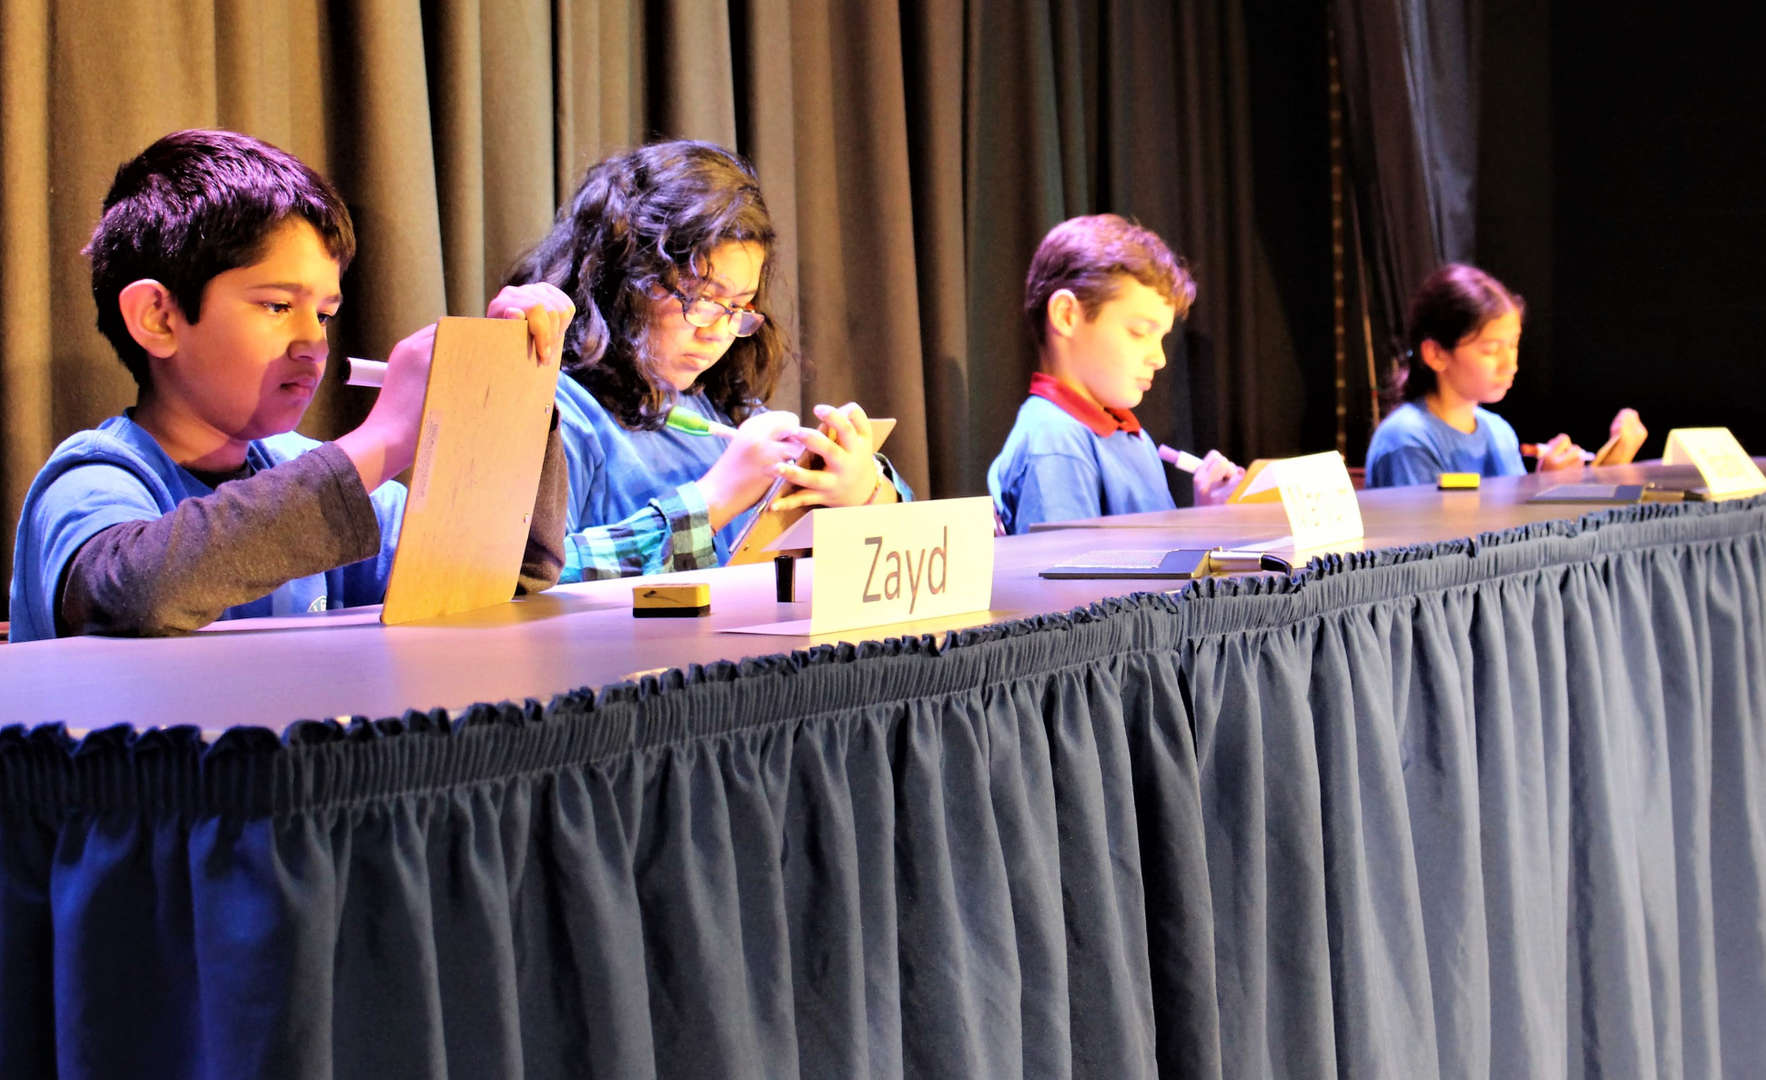 GeoBee contestants write down their answers on whiteboards.